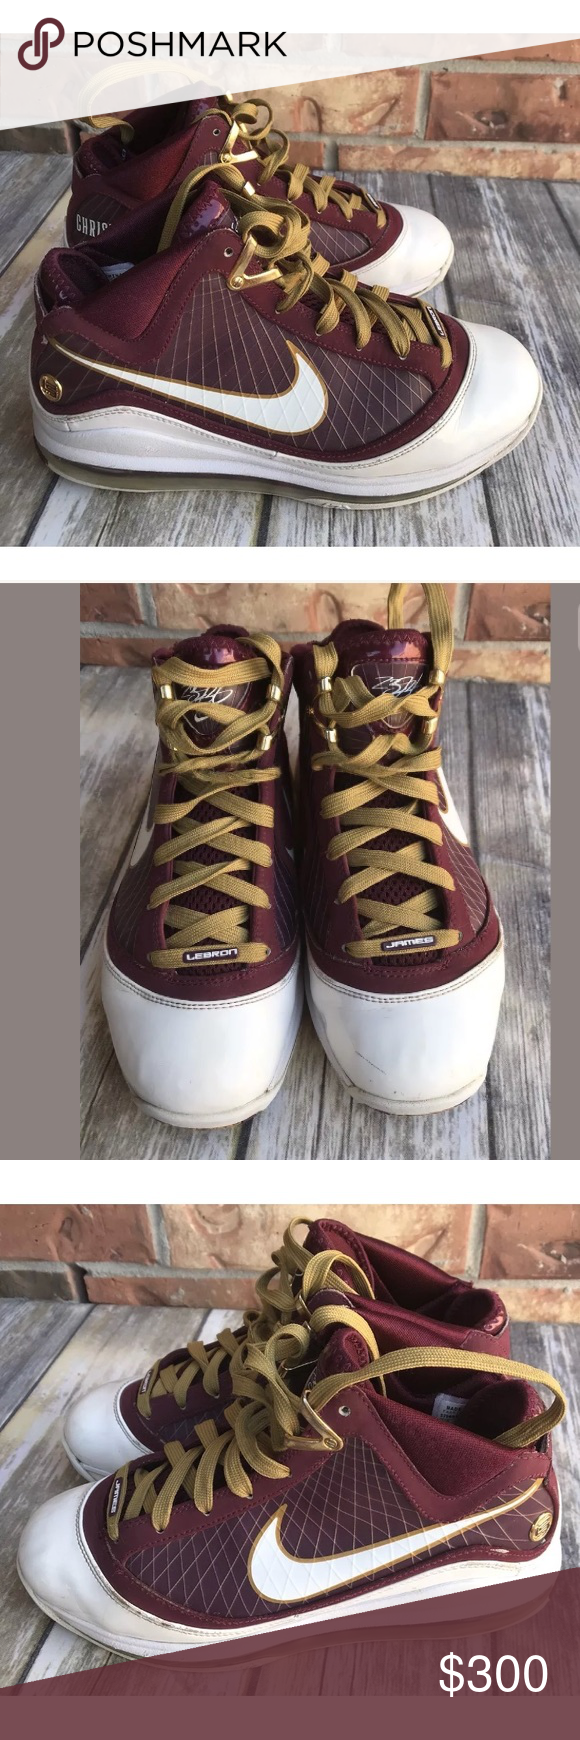 """low priced 57970 8c638 Nike Air Max LeBron 7 """"Christ the King"""" """"CTK"""" sz 7 Nike Air Max LeBron 7 """" Christ the King"""" """"CTK"""" sz 7, 375664-601 Nike LeBron 7 """"Christ the King""""."""